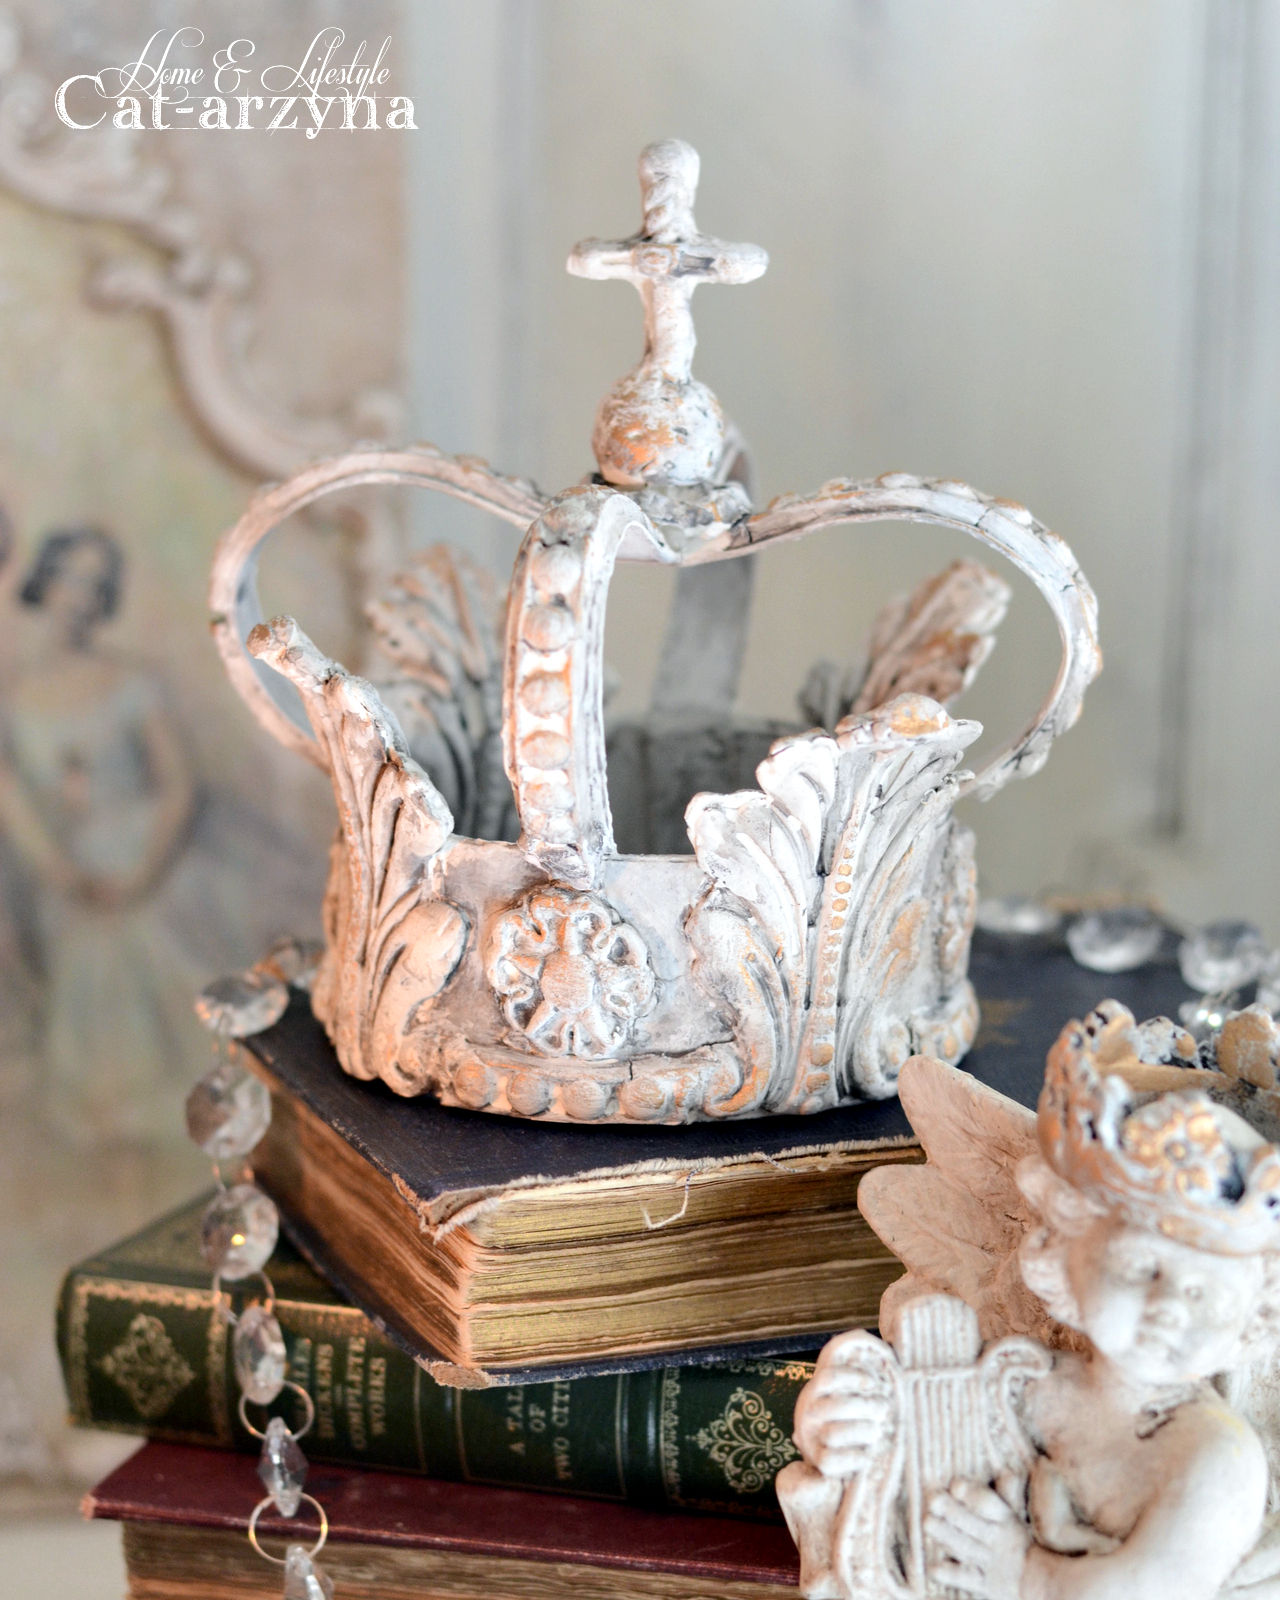 We hoped you enjoyed today's crown tutorial by Cat! She always has charming ideas and gorgeous projects to share. See more of her work on Instagram right here: https://www.instagram.com/catarzynahomelifestyle/   Be on the lookout for even more inspiring ideas for [re]designing your home...